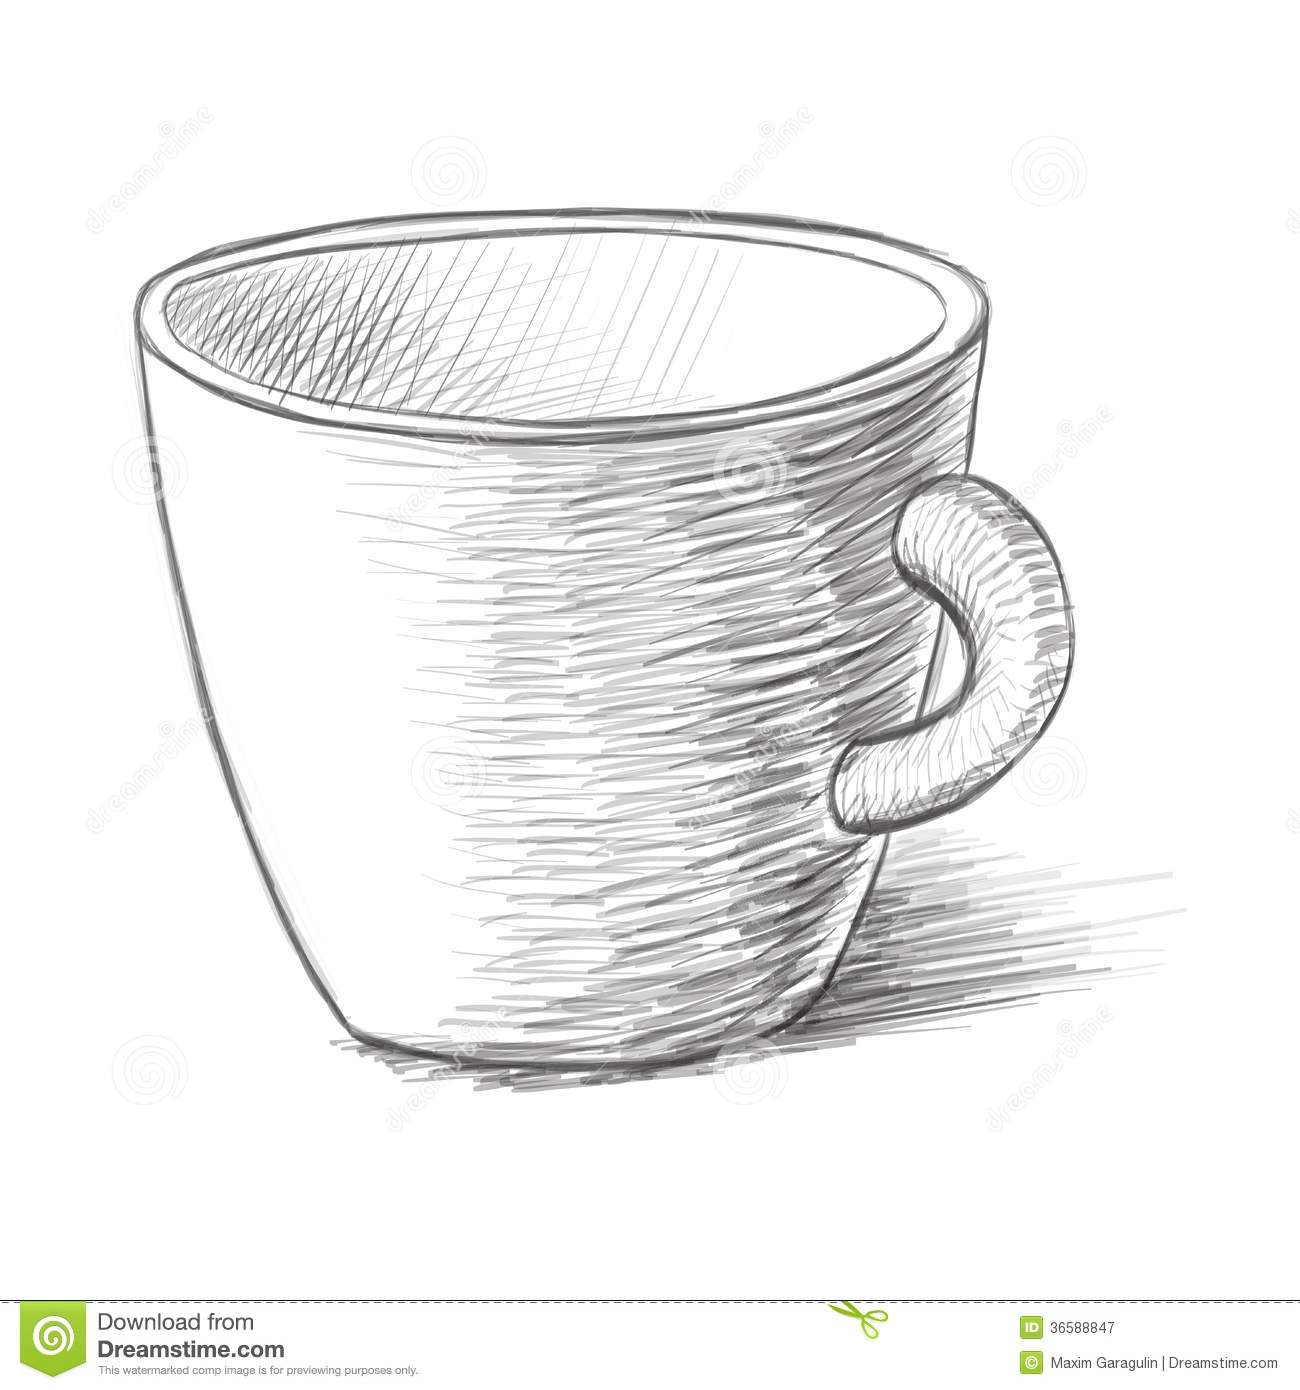 Cup Sketch Vector Illustration Stock Vector - Illustration of ...